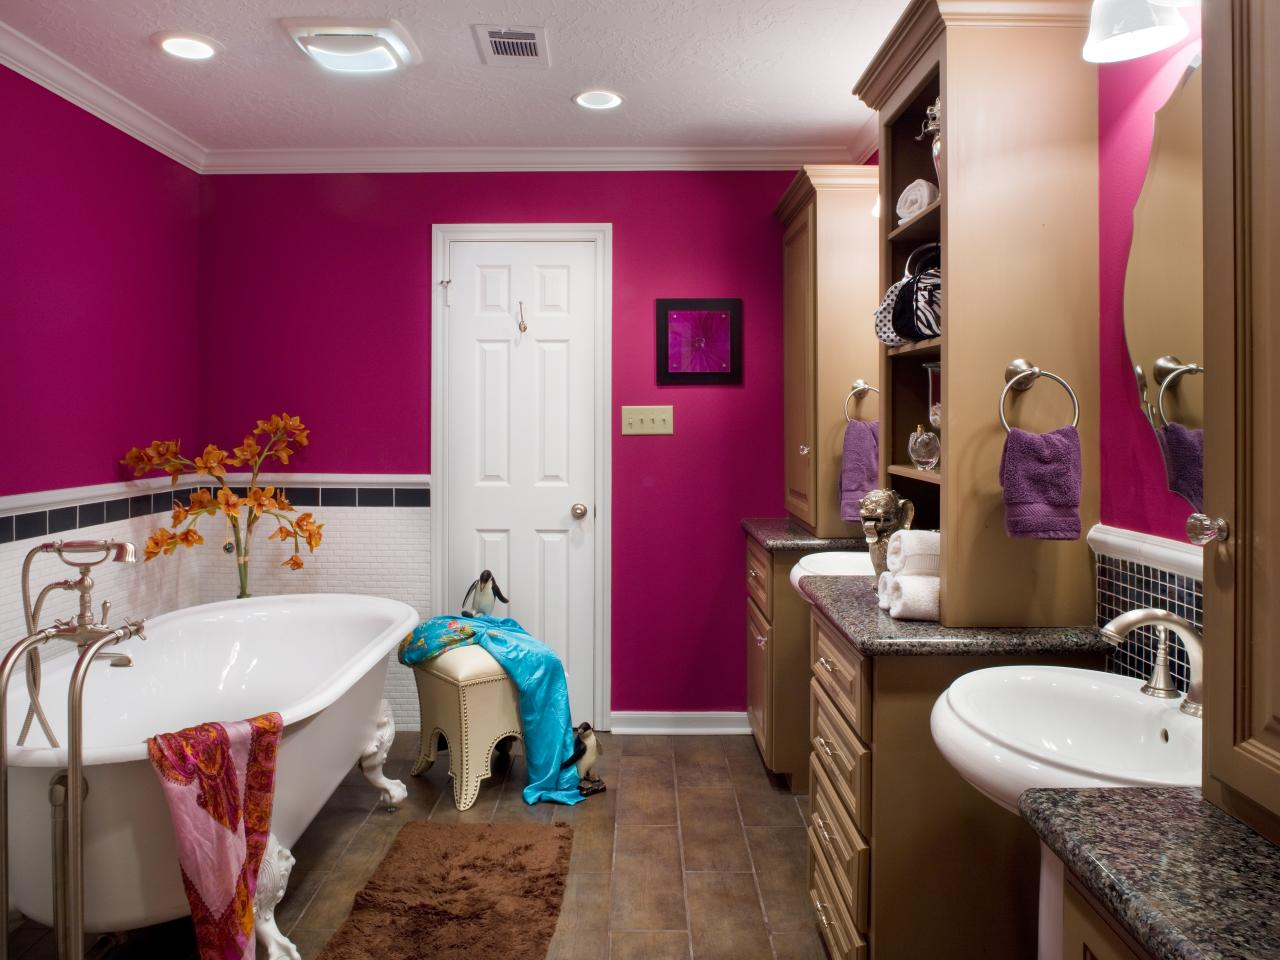 Cool teen bathrooms bathroom ideas designs hgtv for Cool bathroom ideas